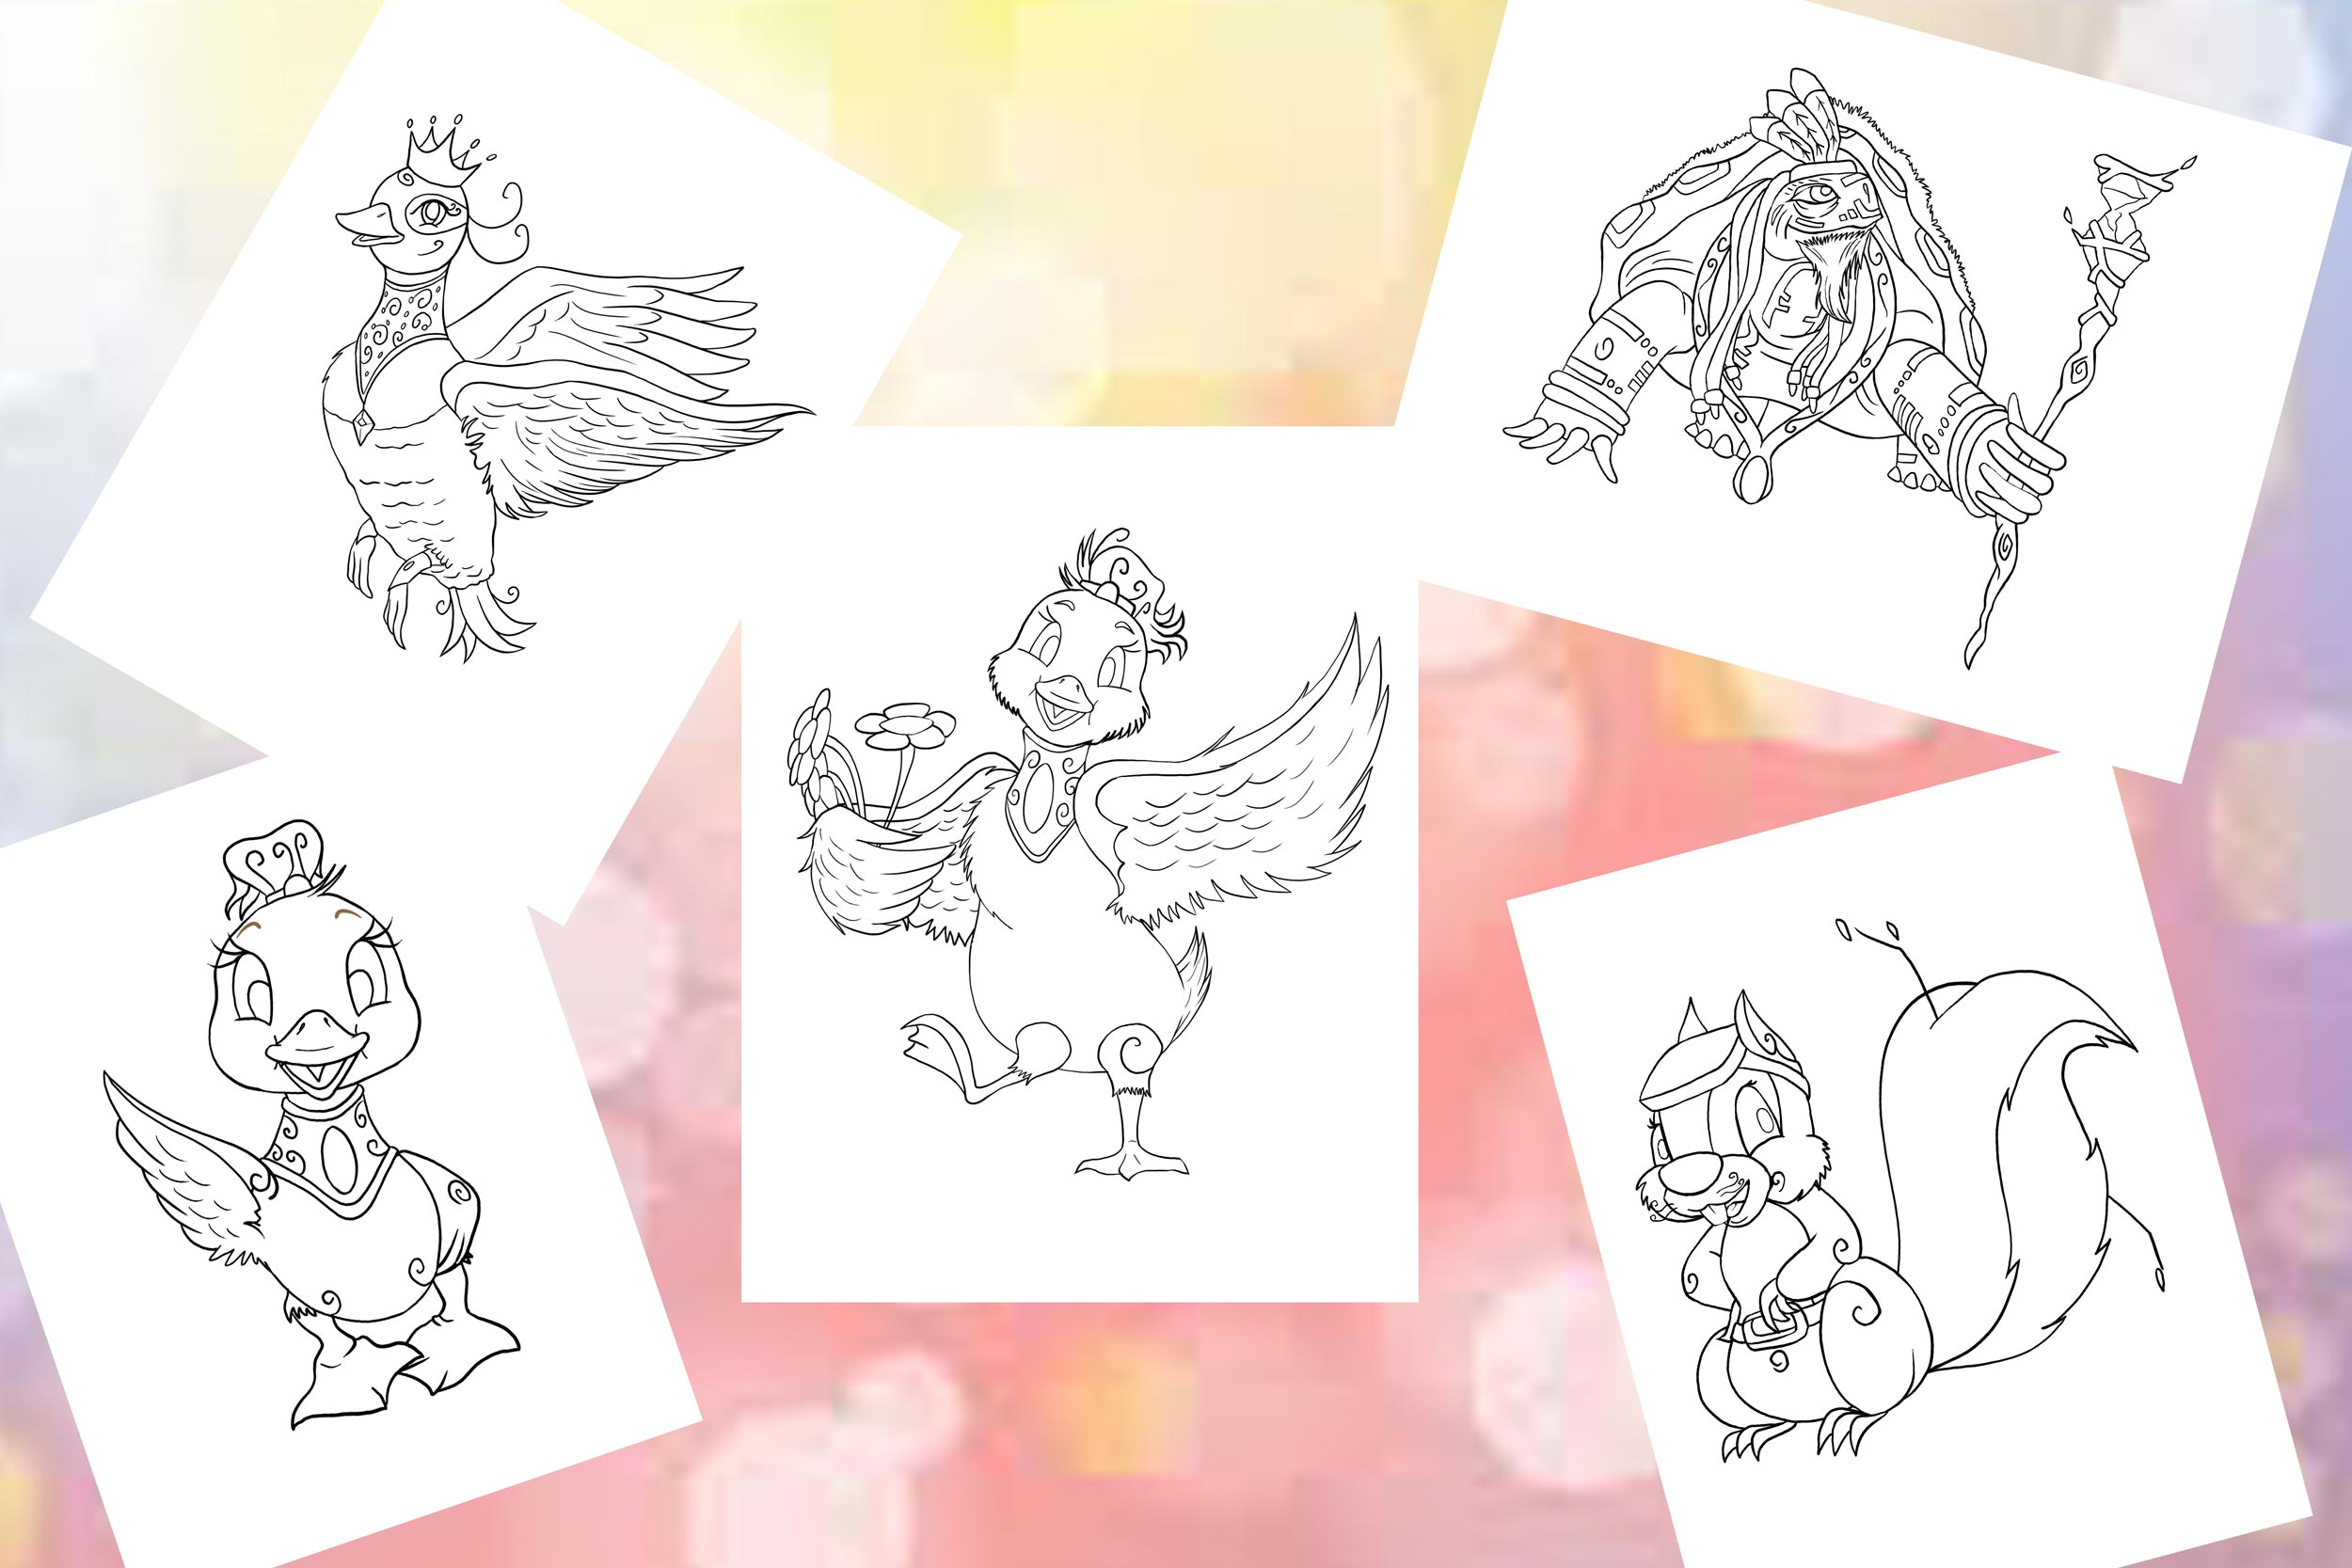 Journey-of-Puddle-download-free-coloring-pages.jpg